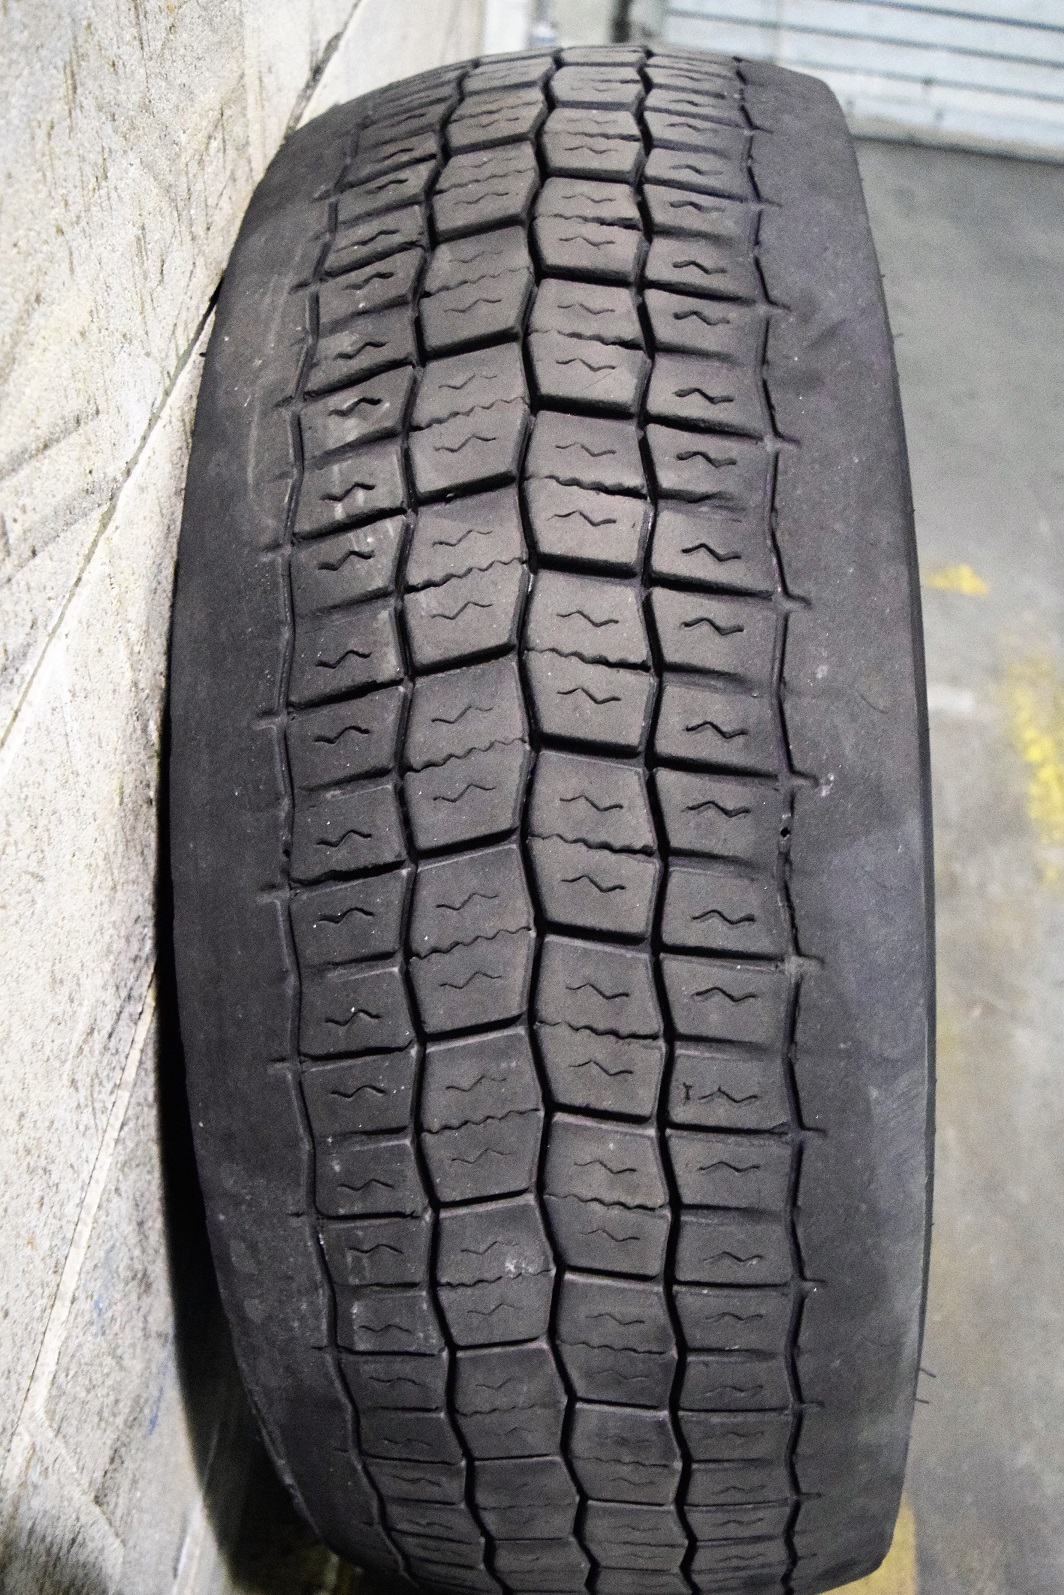 Tire Wear: Is This Normal?